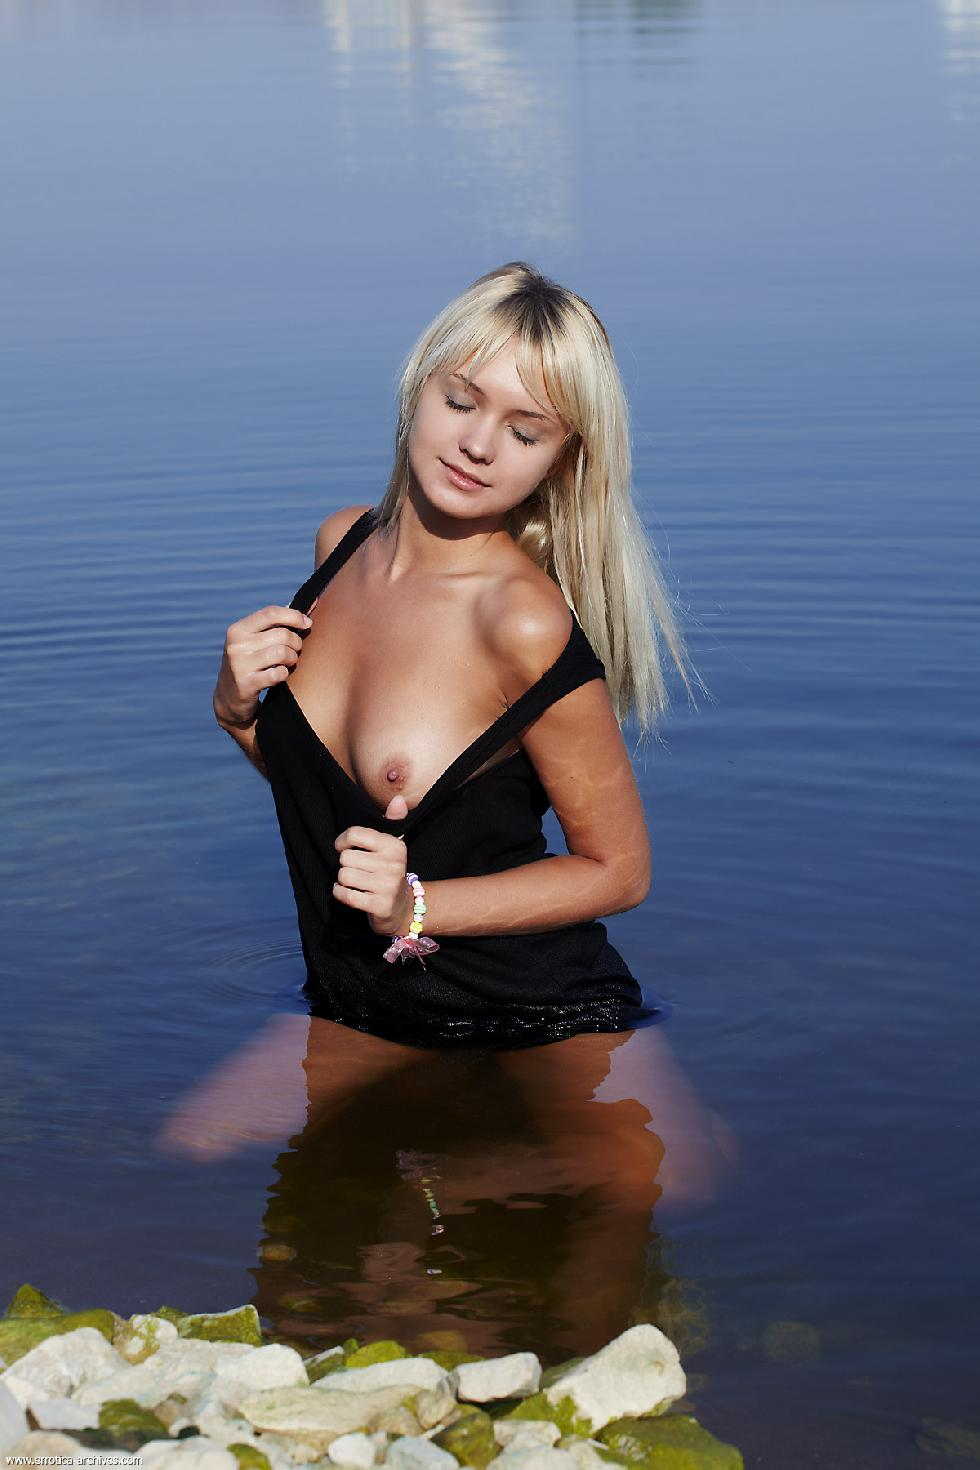 Young blonde is posing in the lake - Lada - 1